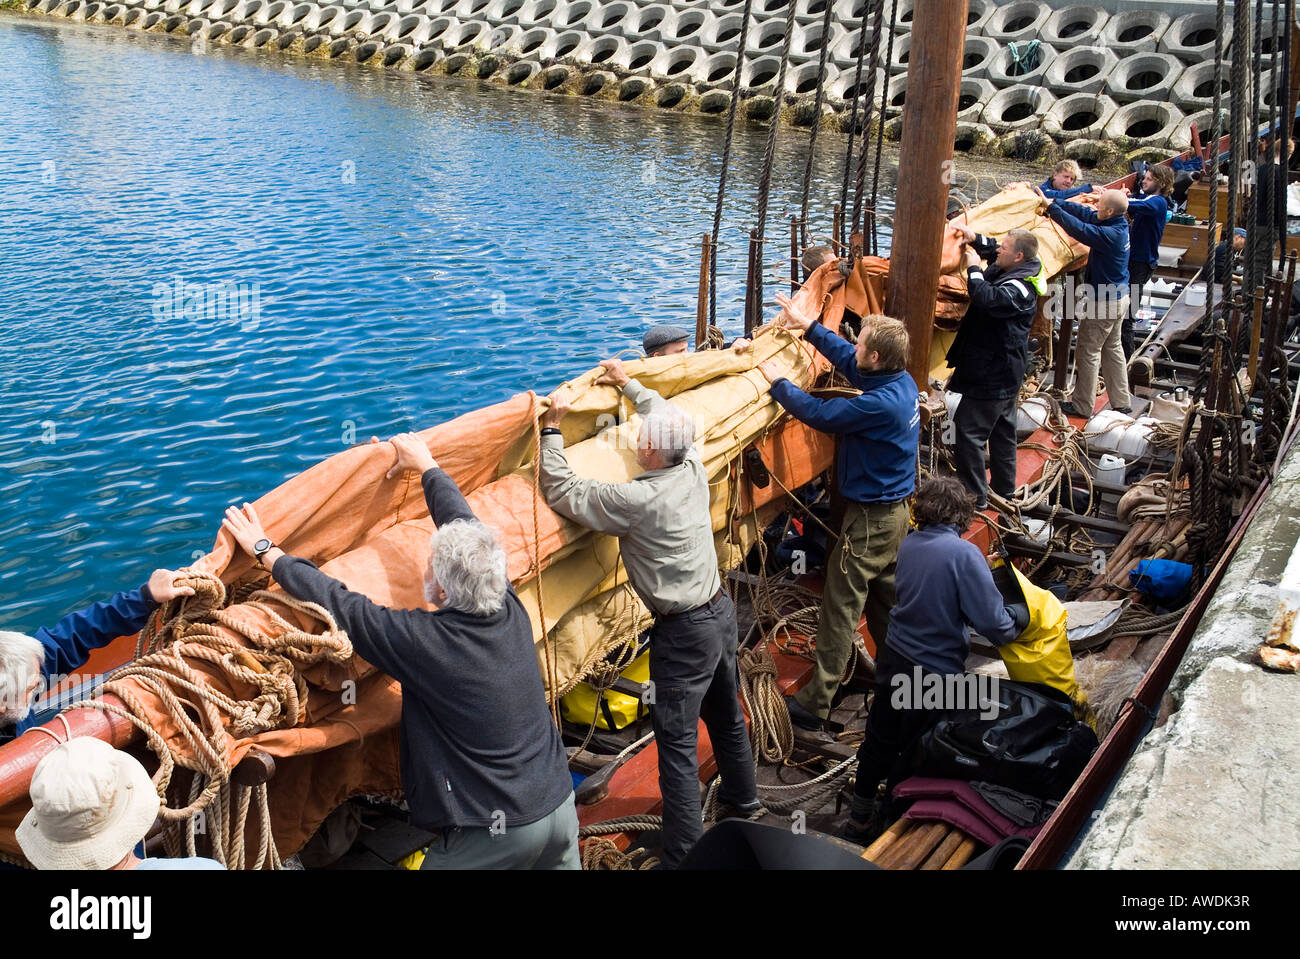 dh Sea Stallion KIRKWALL ORKNEY sailors main sail Havhingsten fra Glendalough viking galley longboat ship - Stock Image